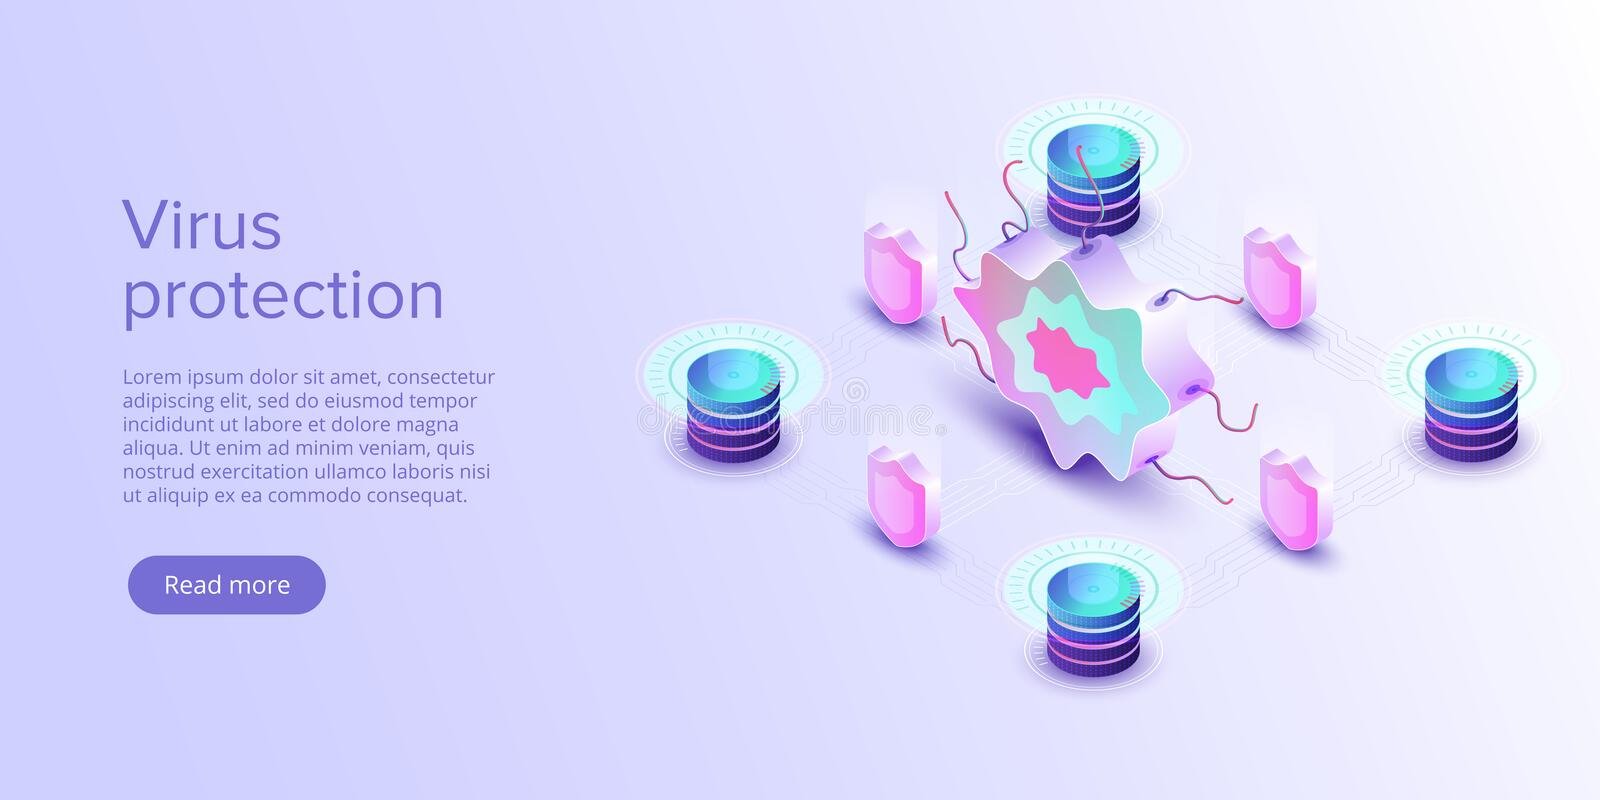 Computer virus protection concept in isometric vector illustration. Online security app or server antivirus program. Internet royalty free illustration